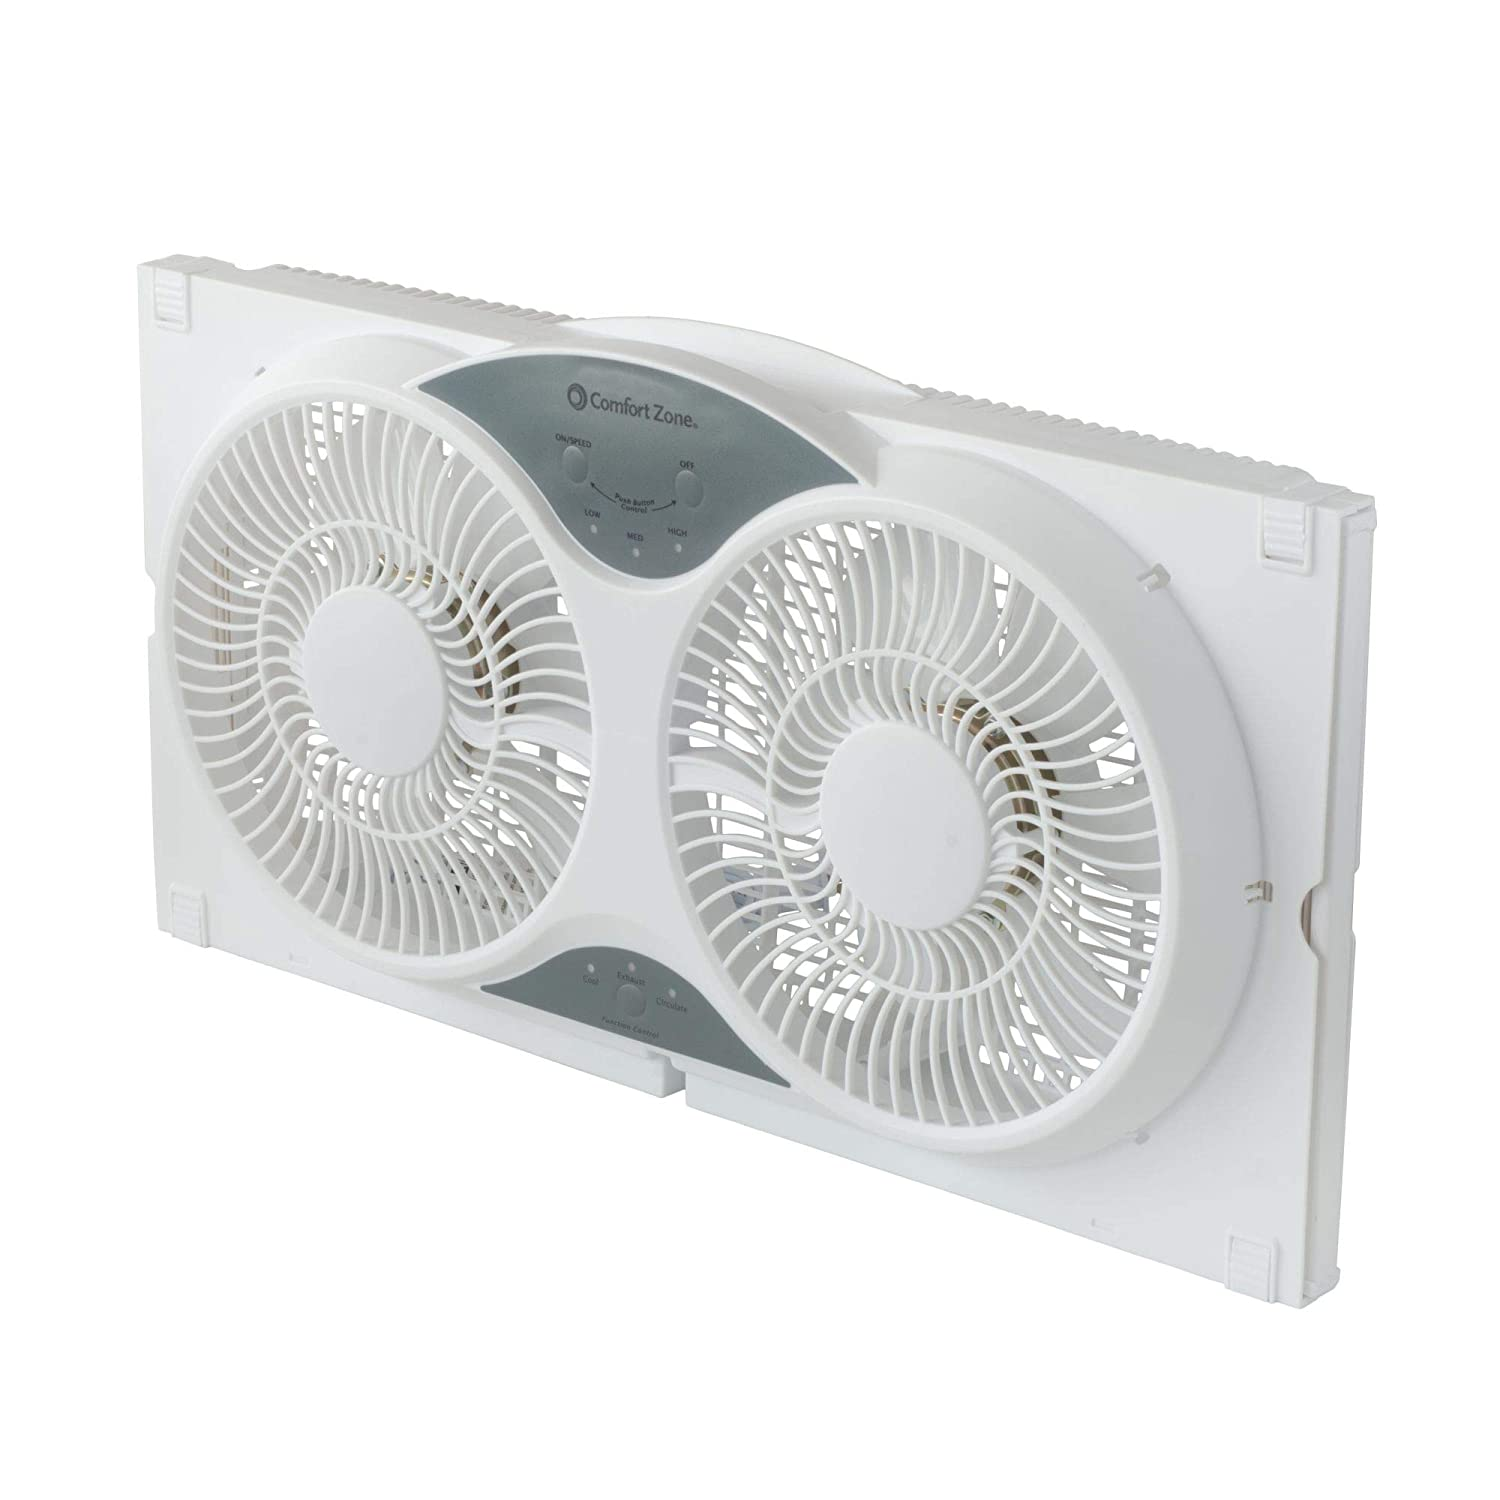 Comfort Zone Twin Window Fan With Remote 3 Speed High Velocity Motor Wiring Diagram Also 98 05 Vw Beetle On Ceiling Reverse Dual Blade Fans Air Purifier Replacement Filters